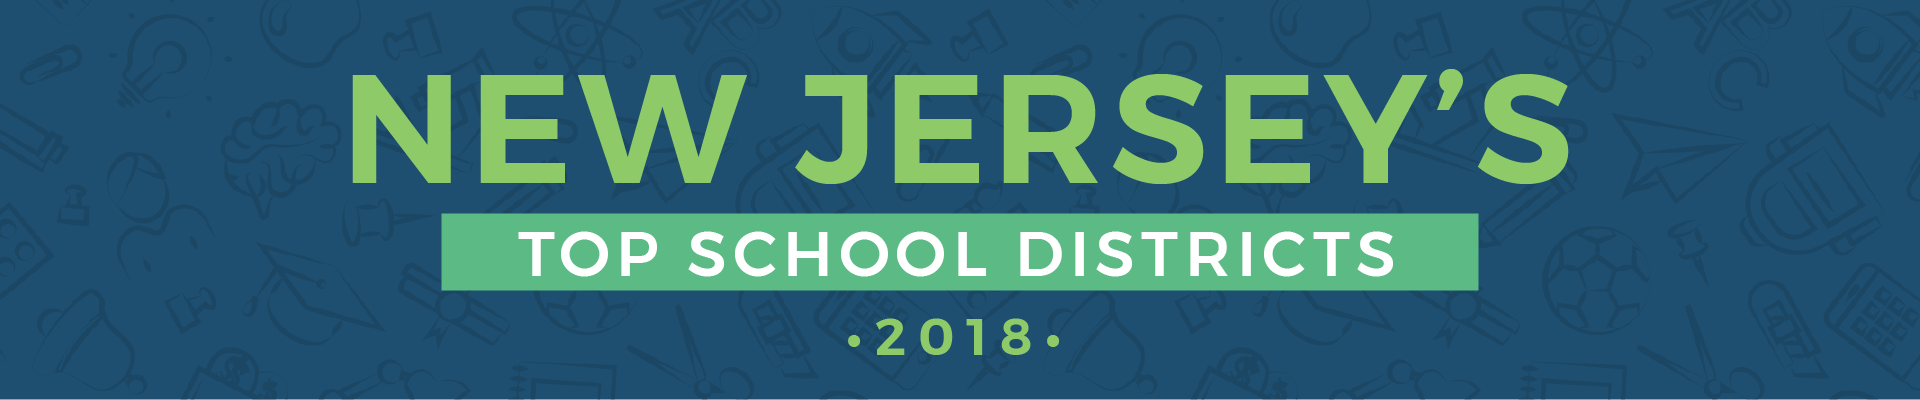 Top School Districts in New Jersey, 2018 | BackgroundChecks org